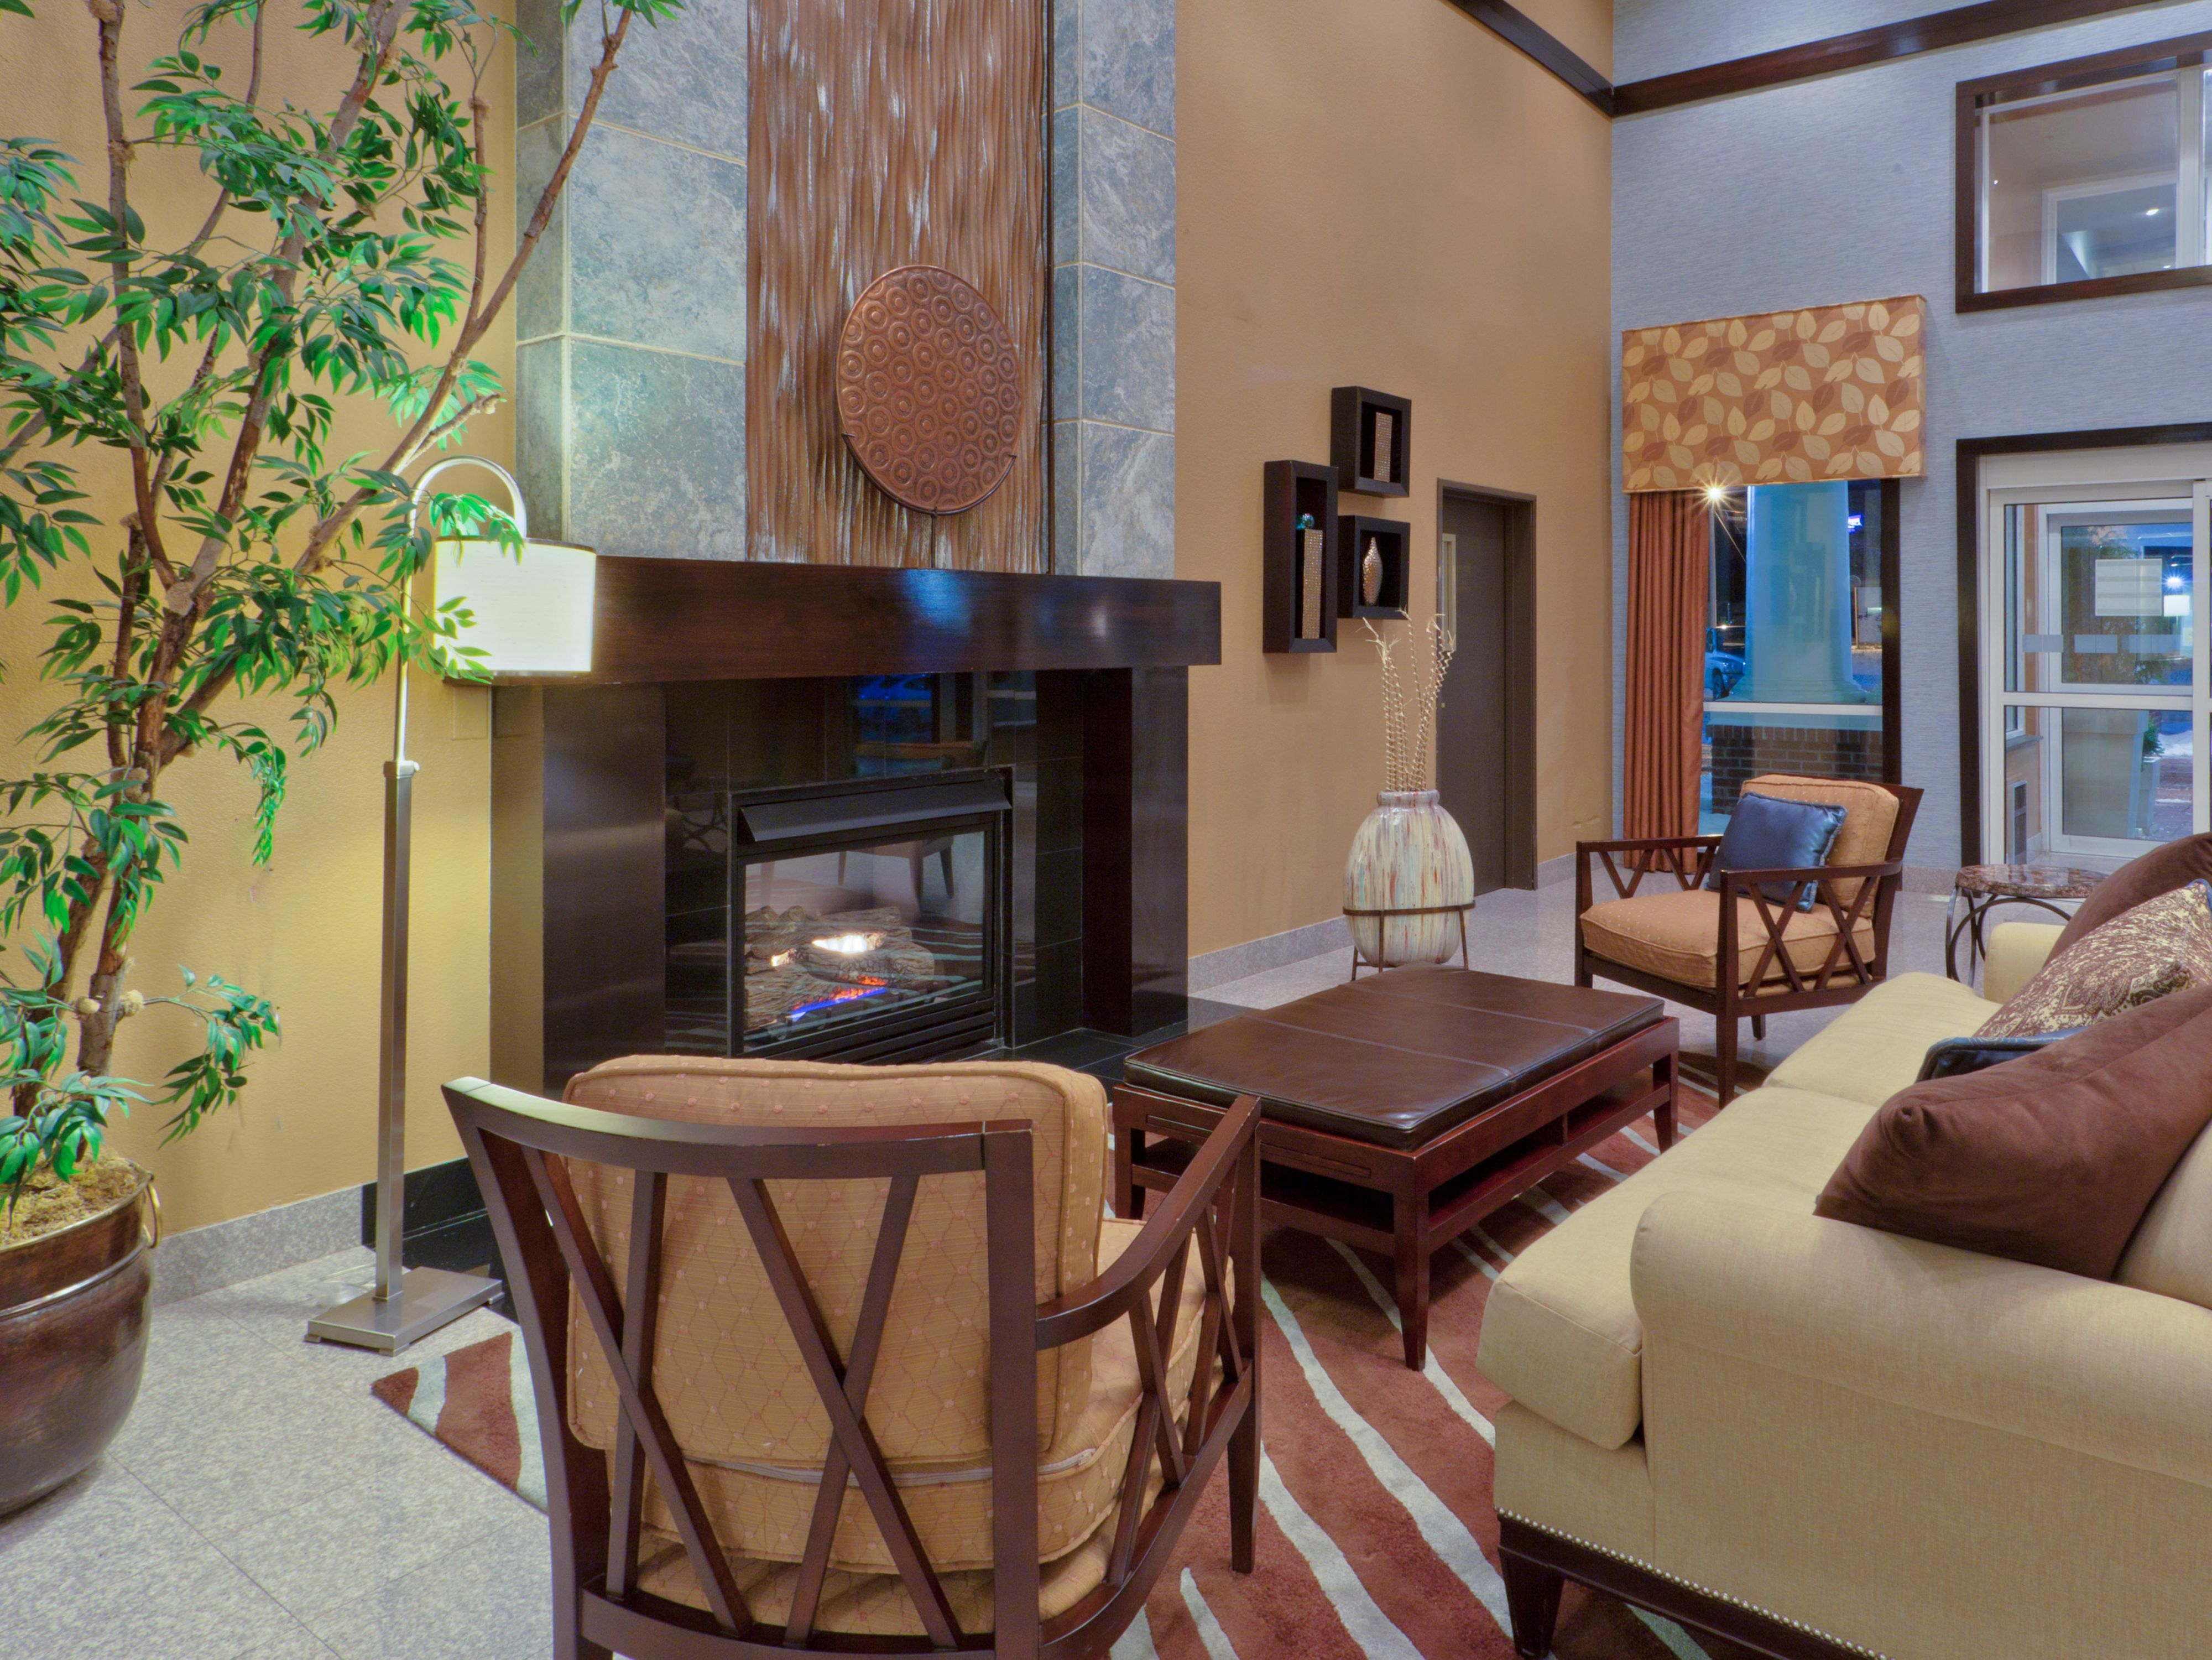 Have a seat in front of our warm and cozy fireplace.